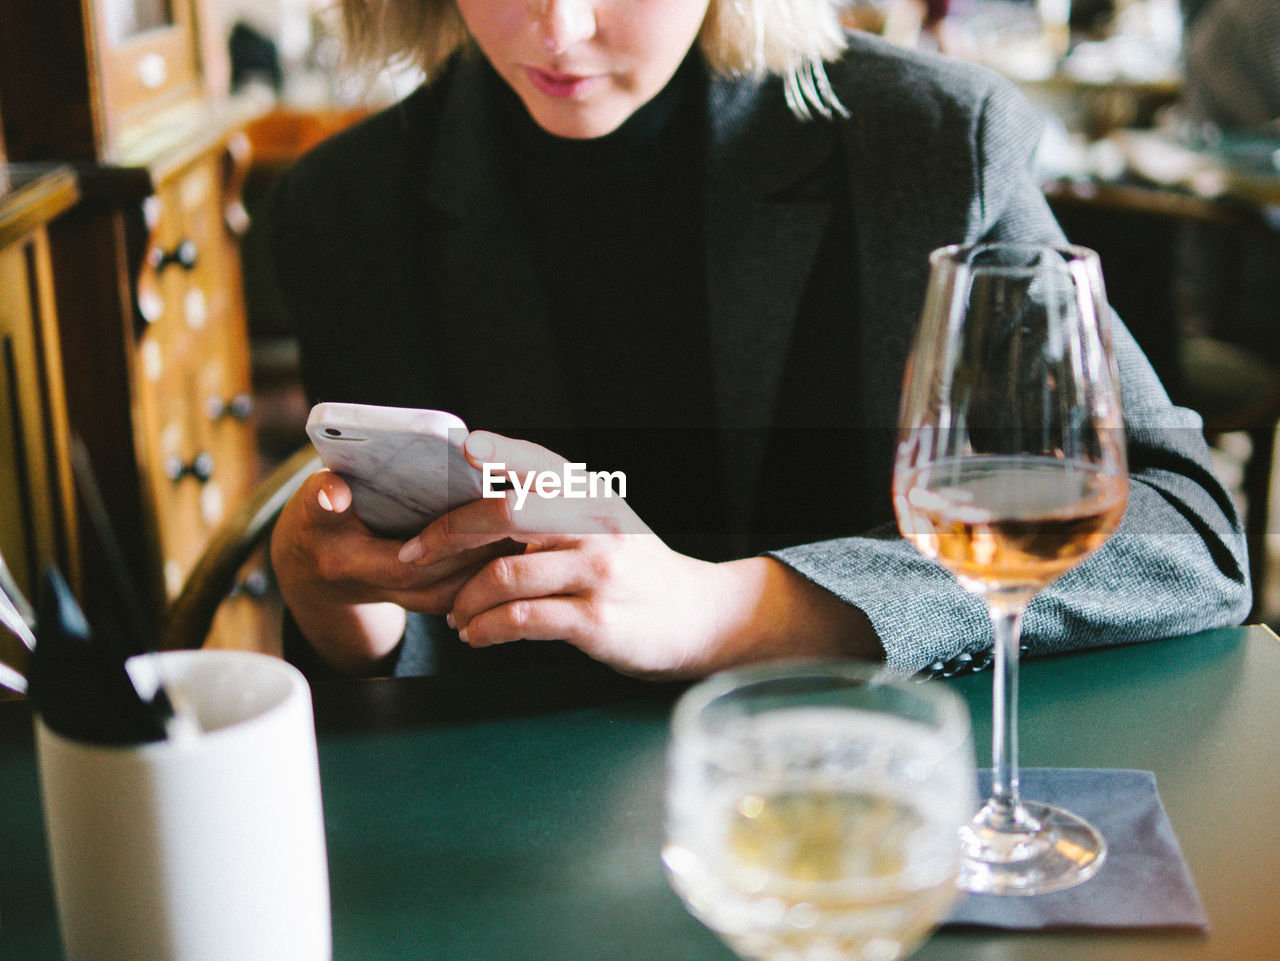 Midsection of woman using phone in restaurant